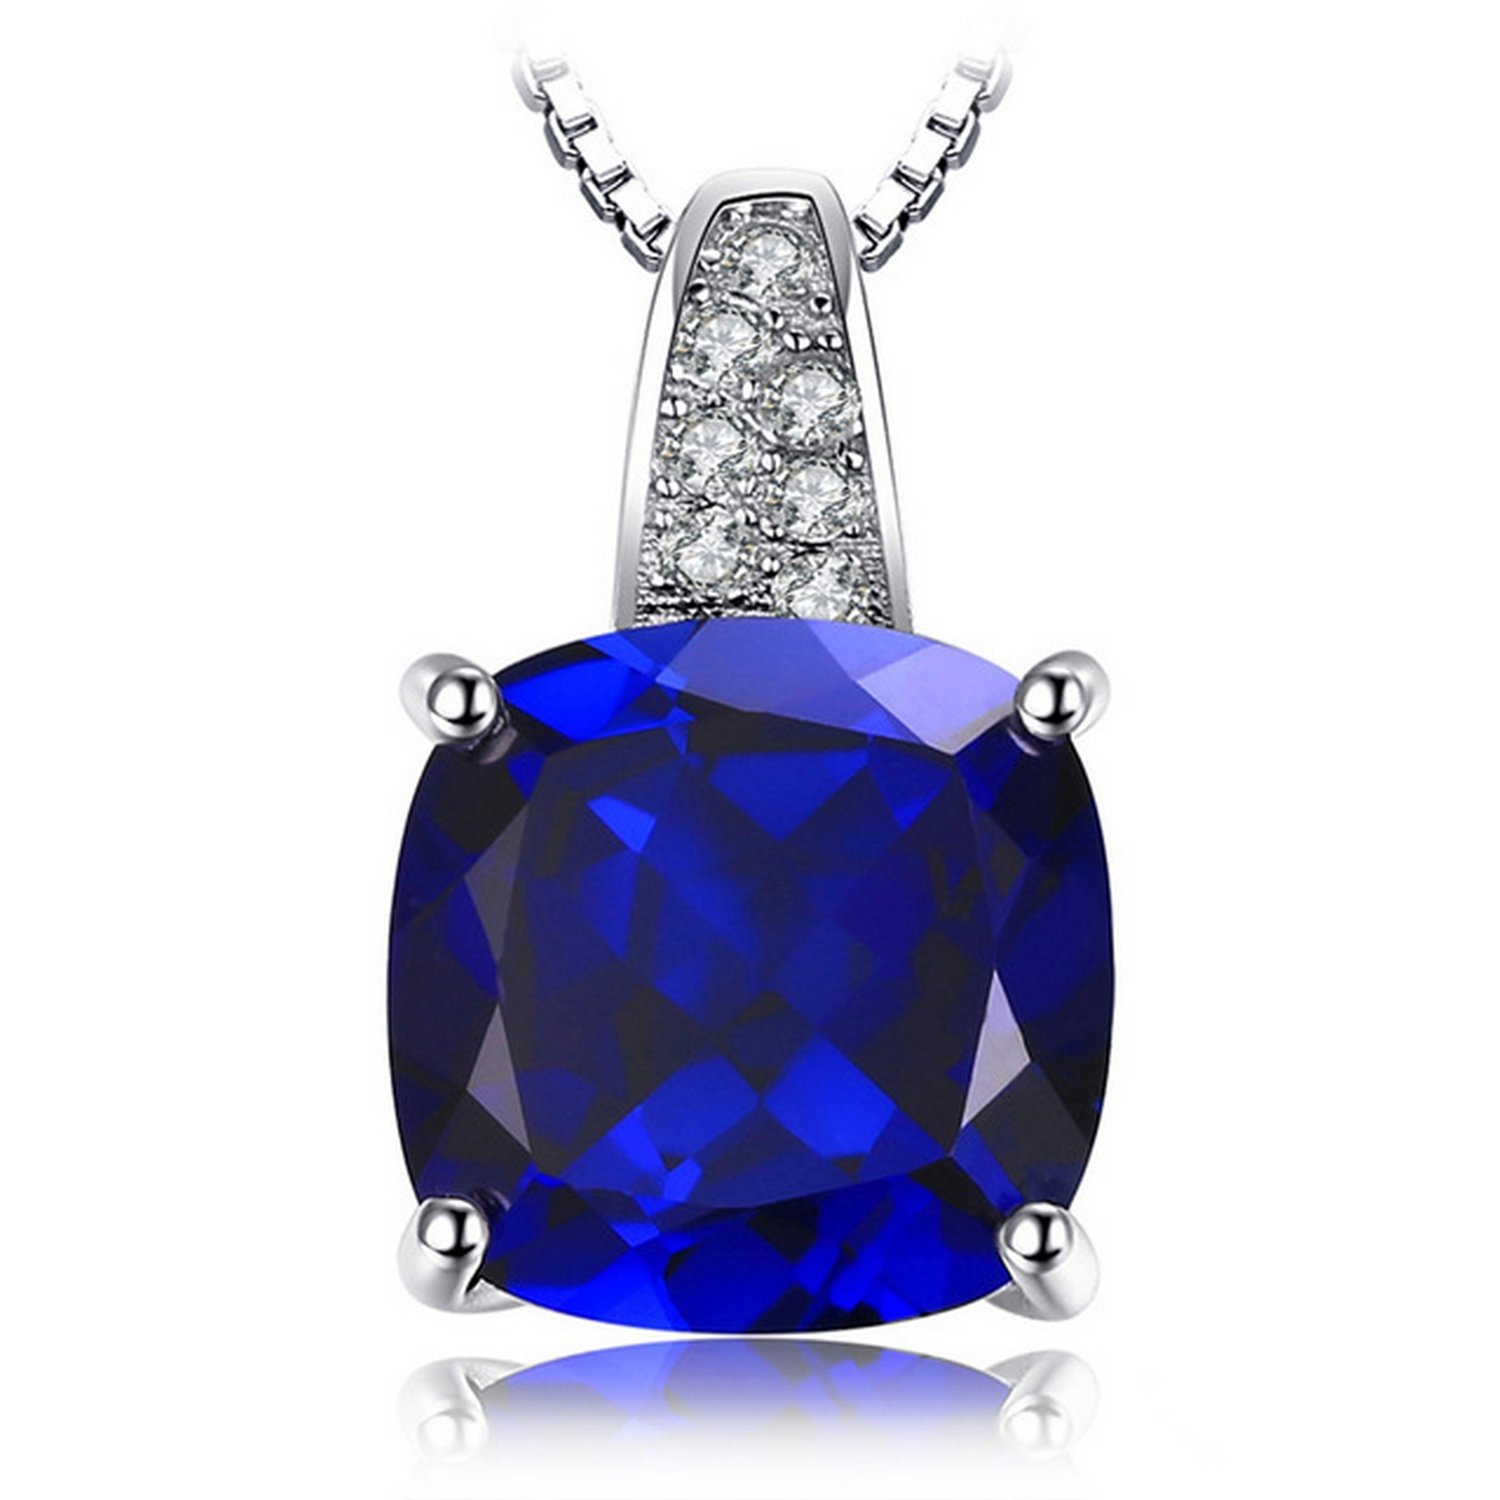 CS-DB Jewelry Silver 4.9ct Created Blue Sapphire Solitaire Chain Charm Pendants Necklaces